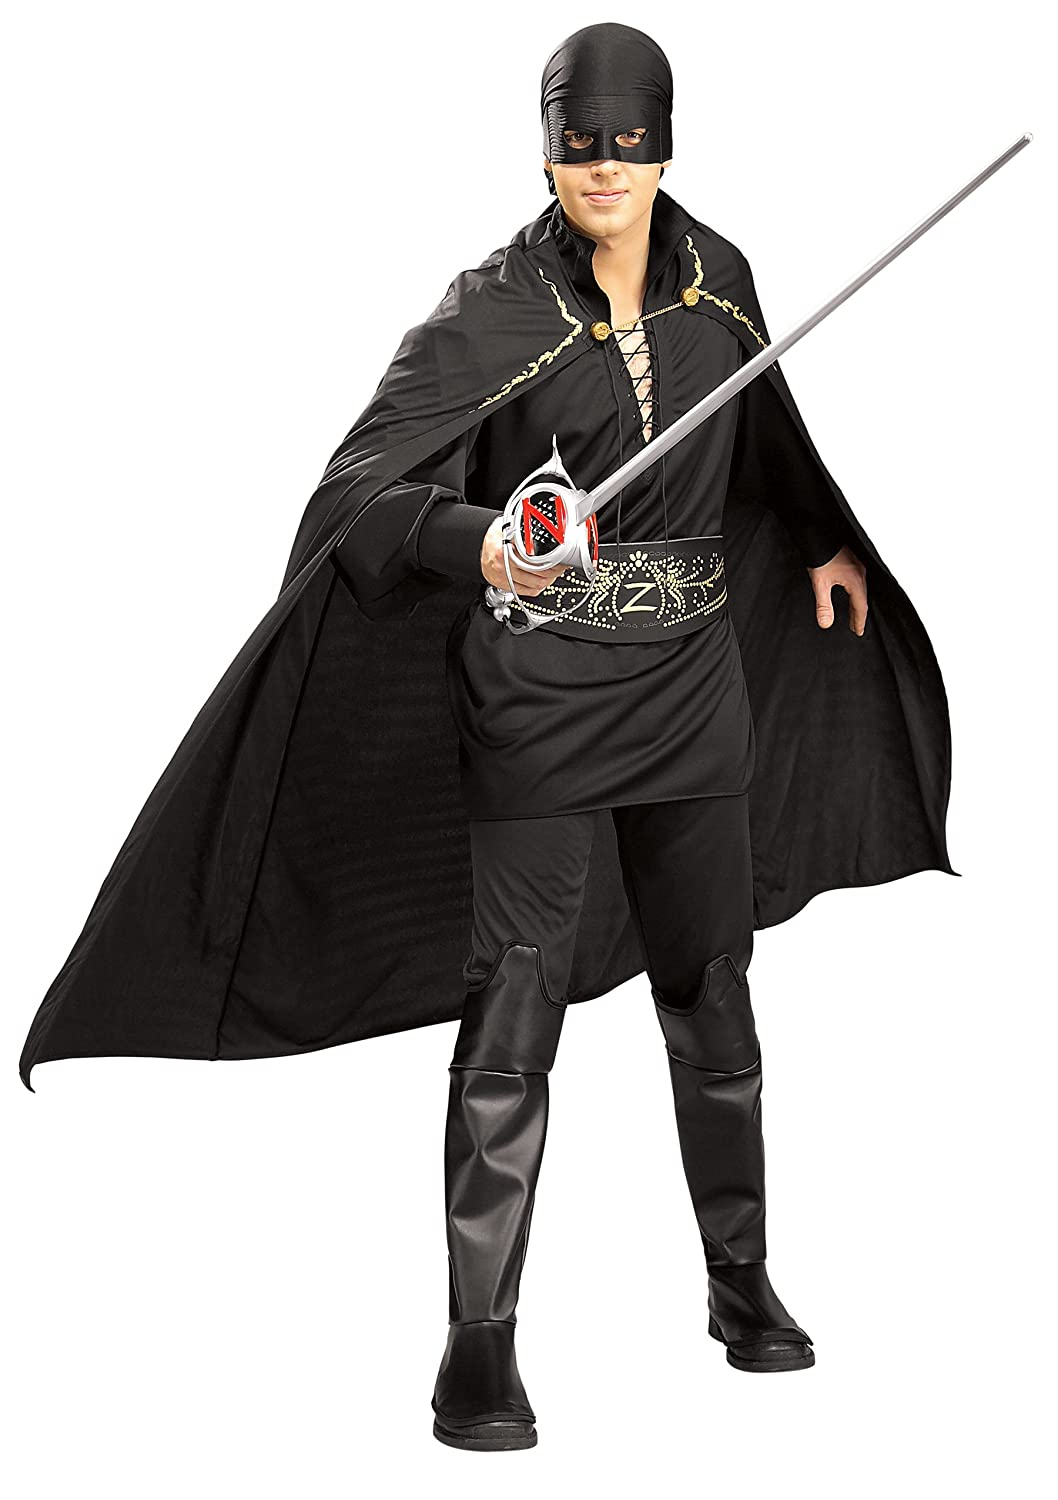 amazoncom zorro complete adult costume xl clothing - Amazon Halloween Costumes Men